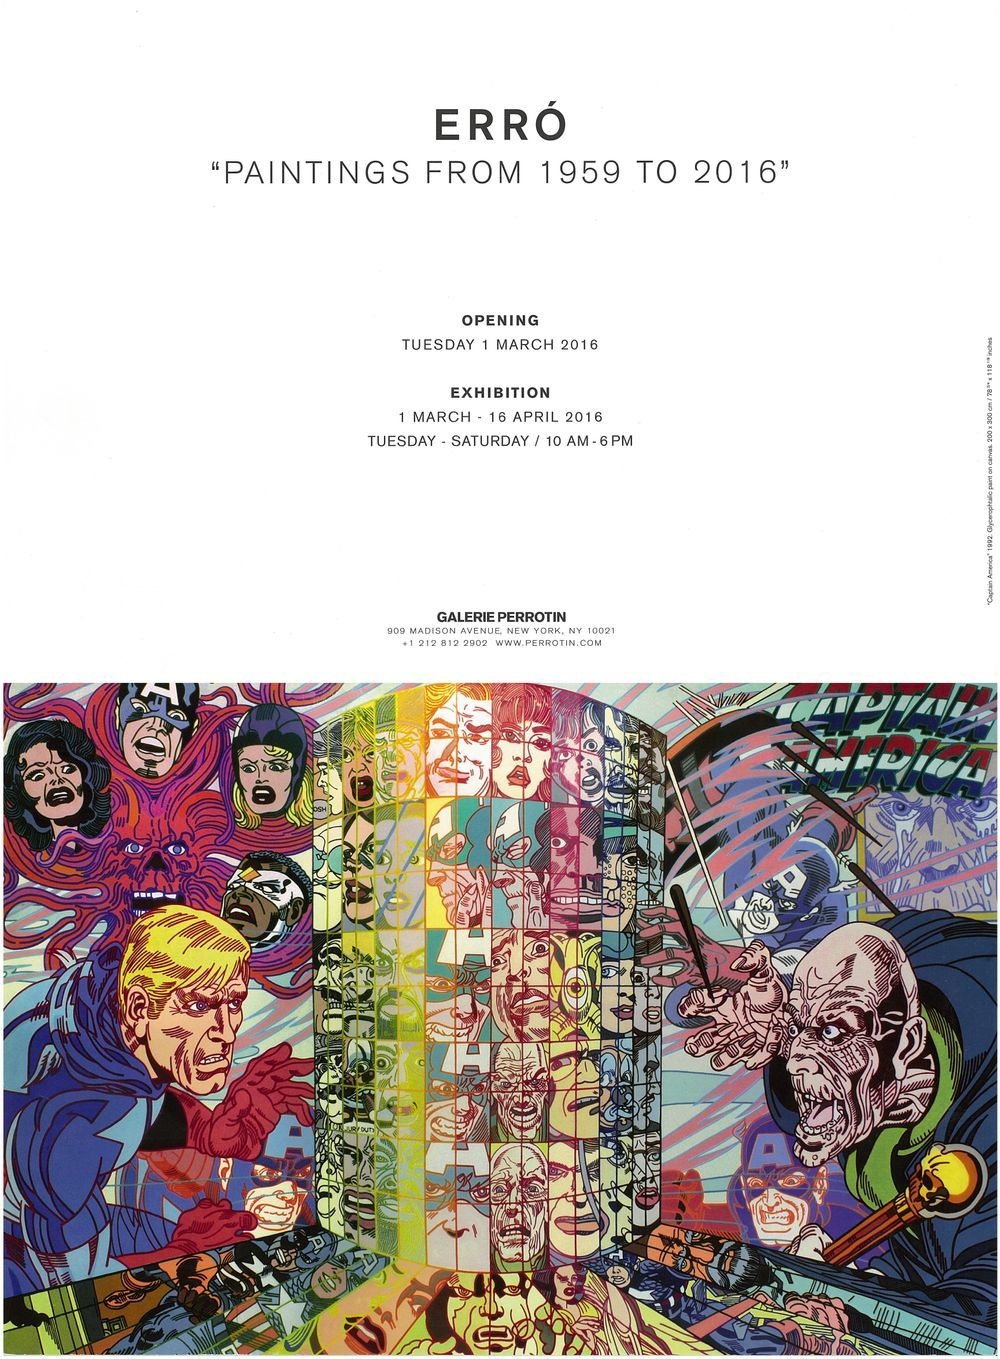 Artist:ERRÓ, Exhibition:Erró - Paintings from 1959 to 2016